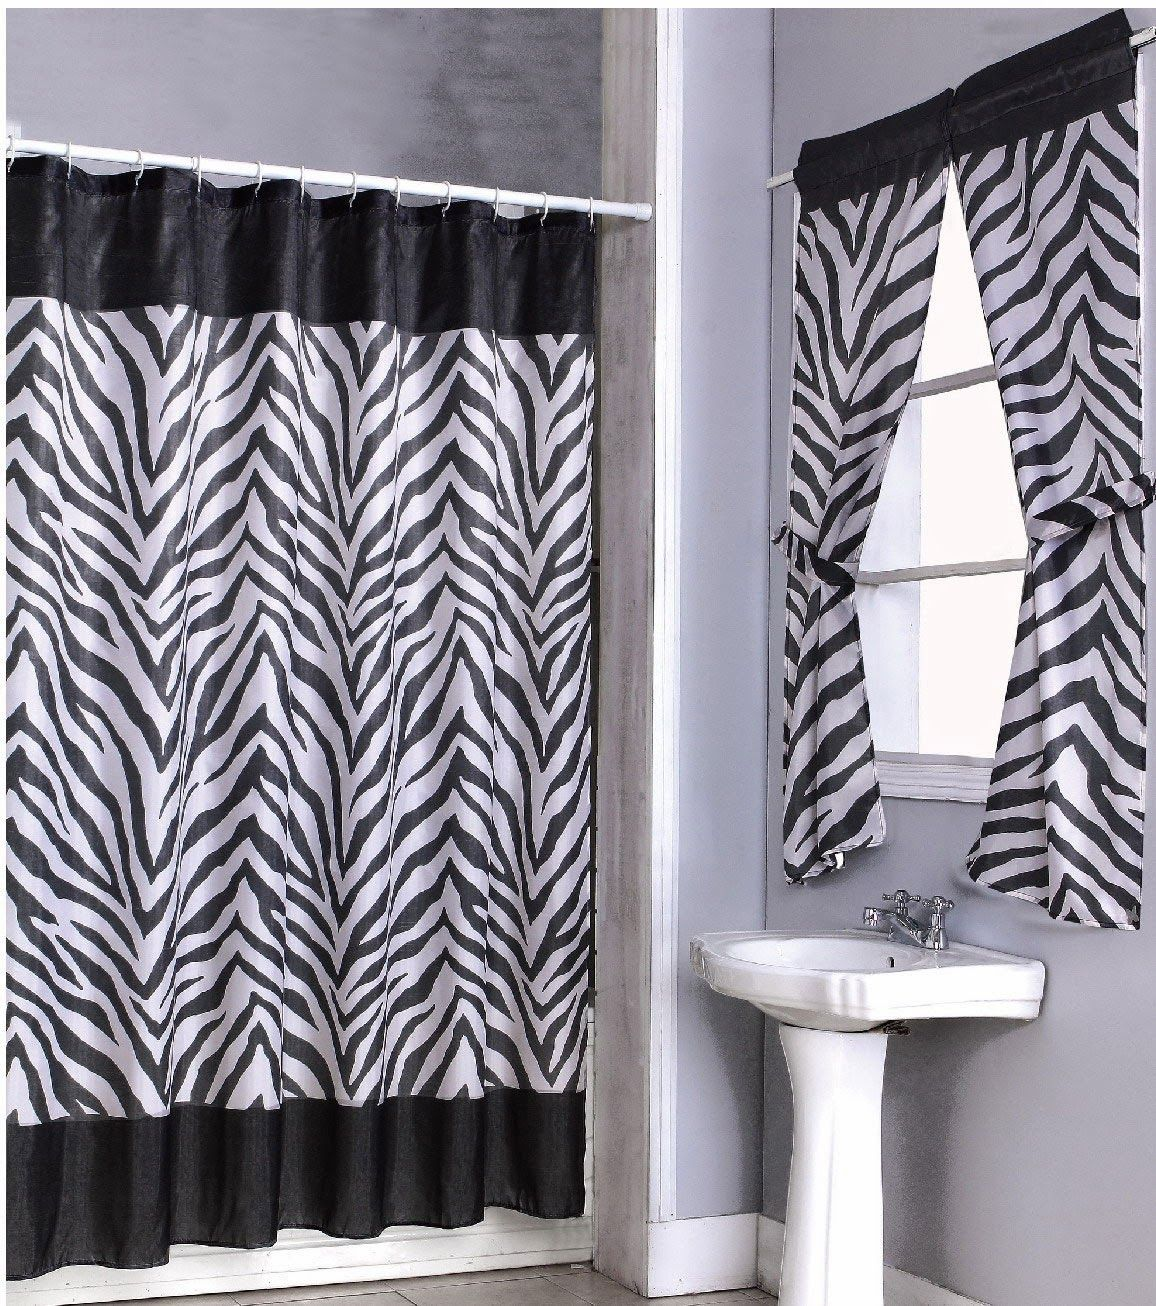 Curtain Ideas Zebra Bathroom Window Curtains Shower Curtain